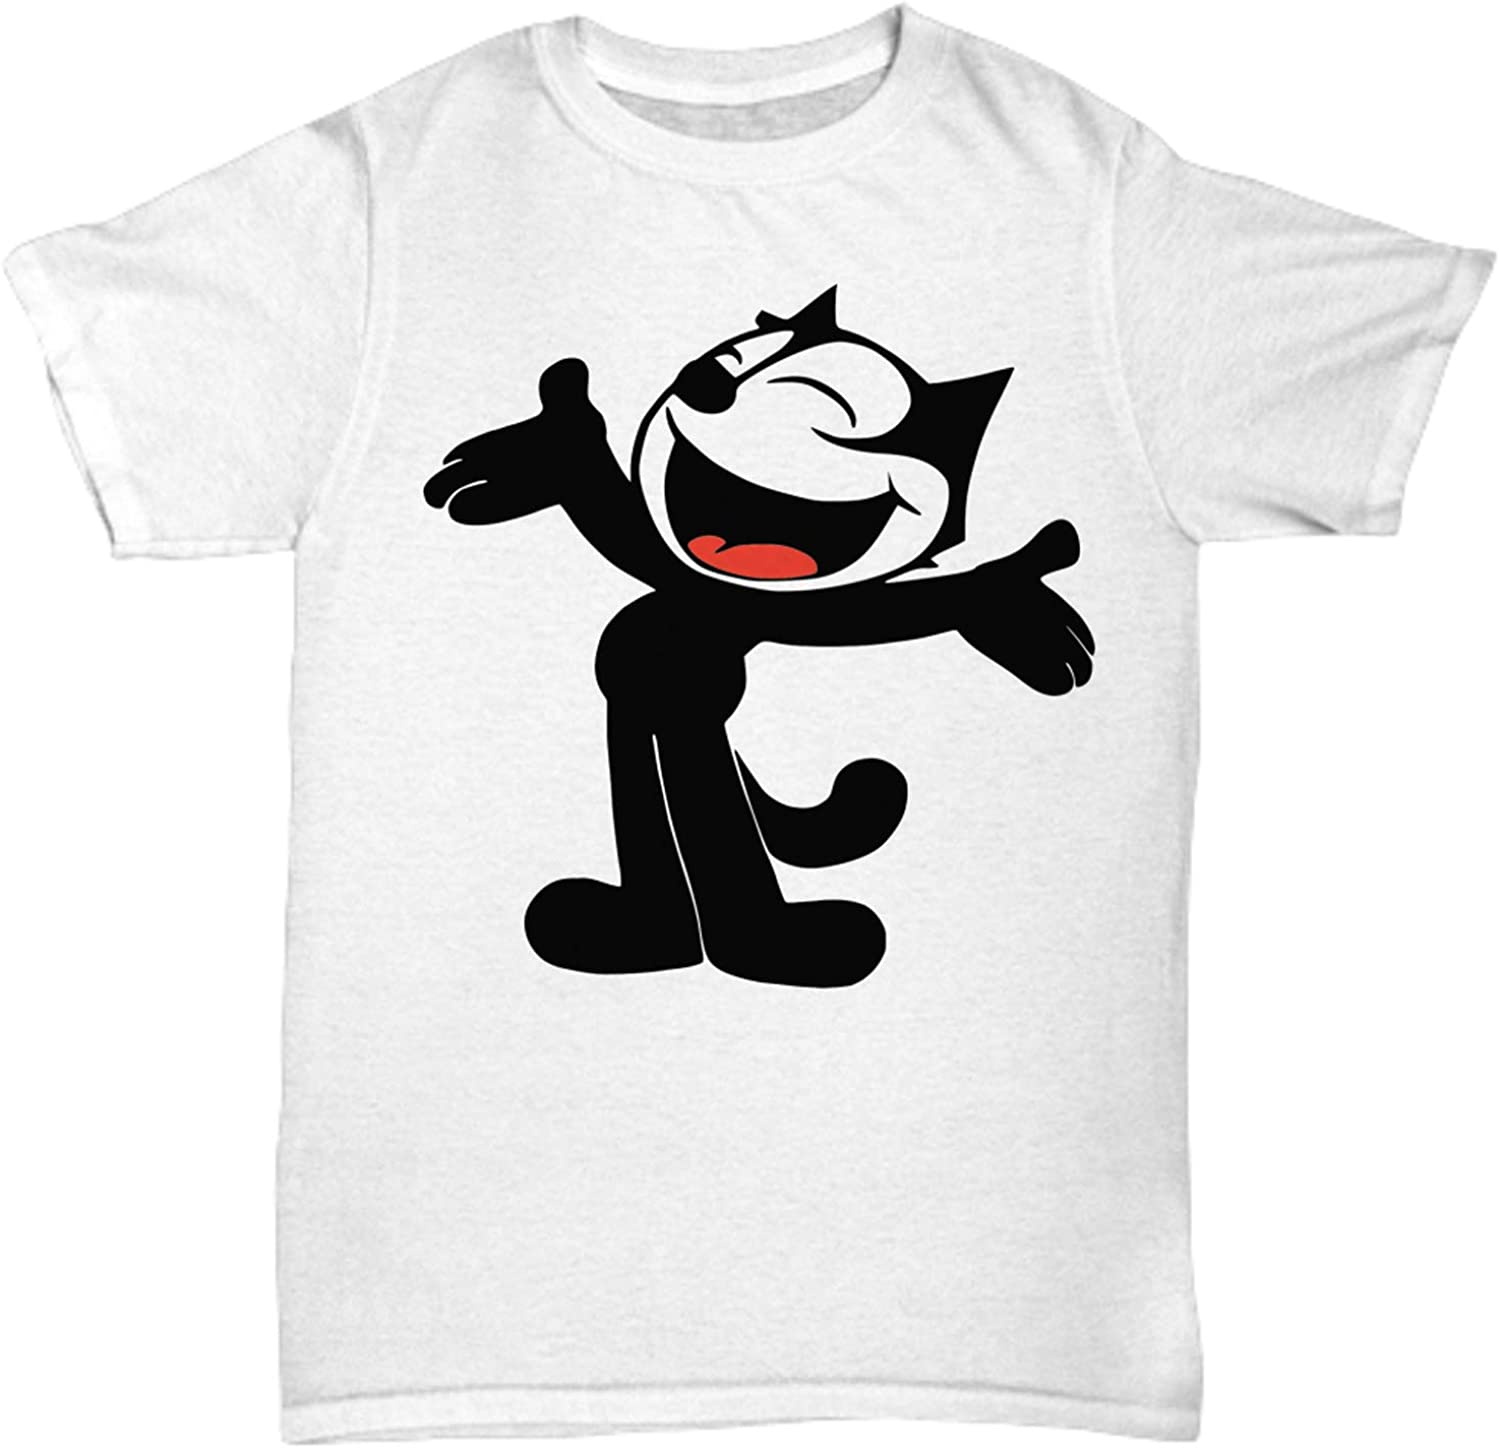 Felix The Cat Classic Cartoon Retro T Shirt Mens White Tee Gift New From US